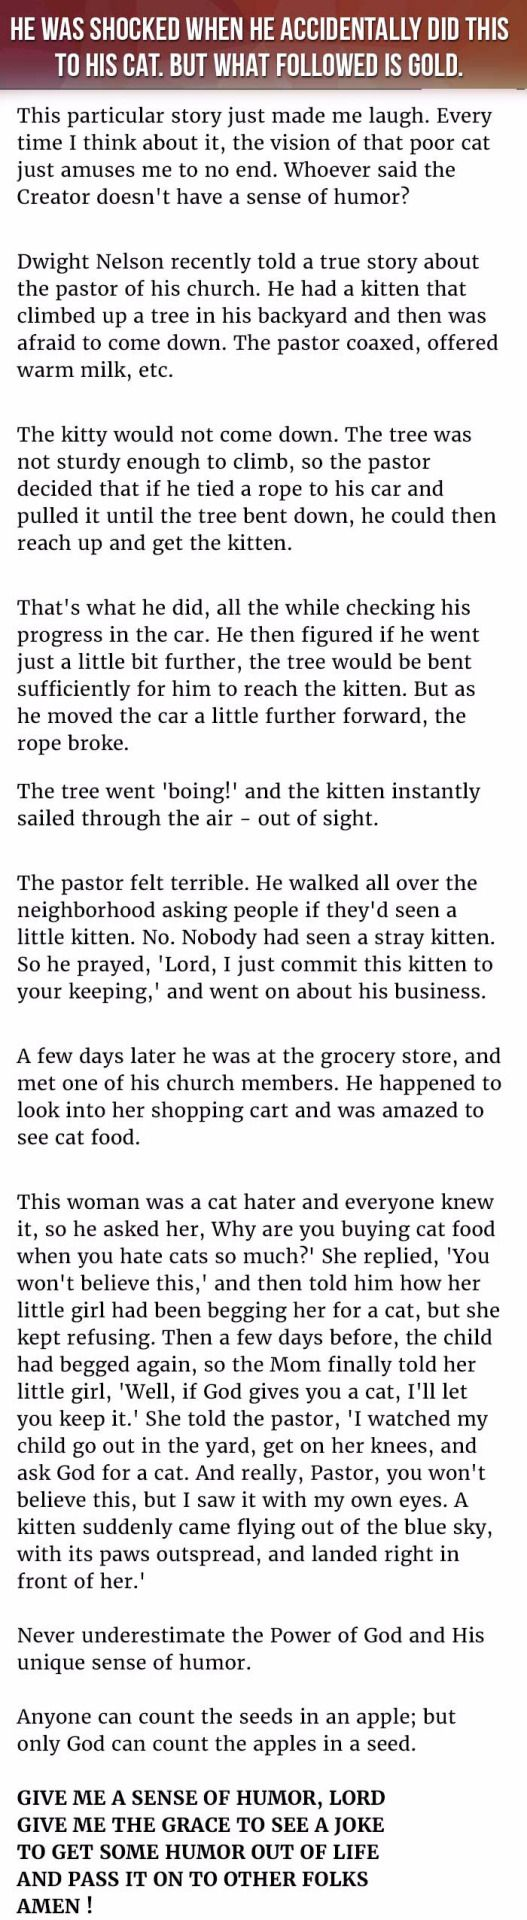 Adults hilarious stories for